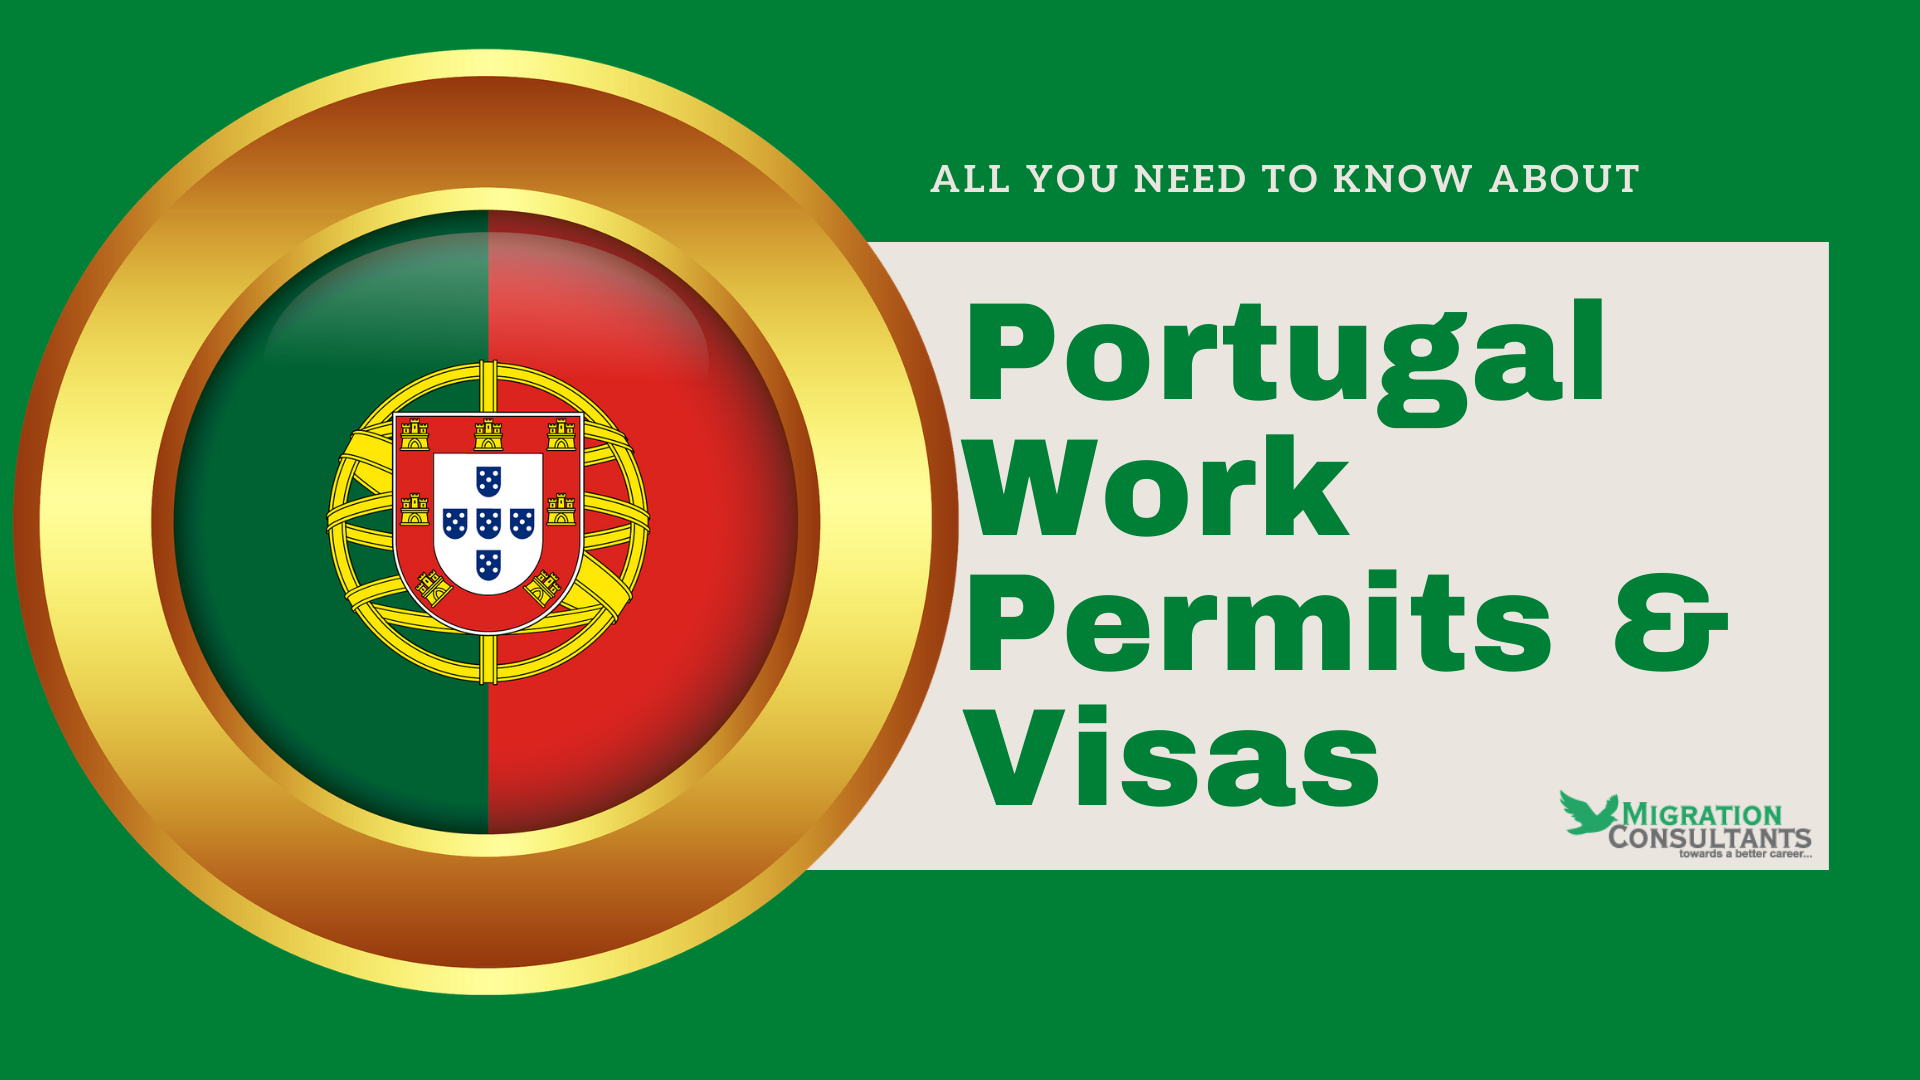 All you need to know about Portugal Work Permits and Visas